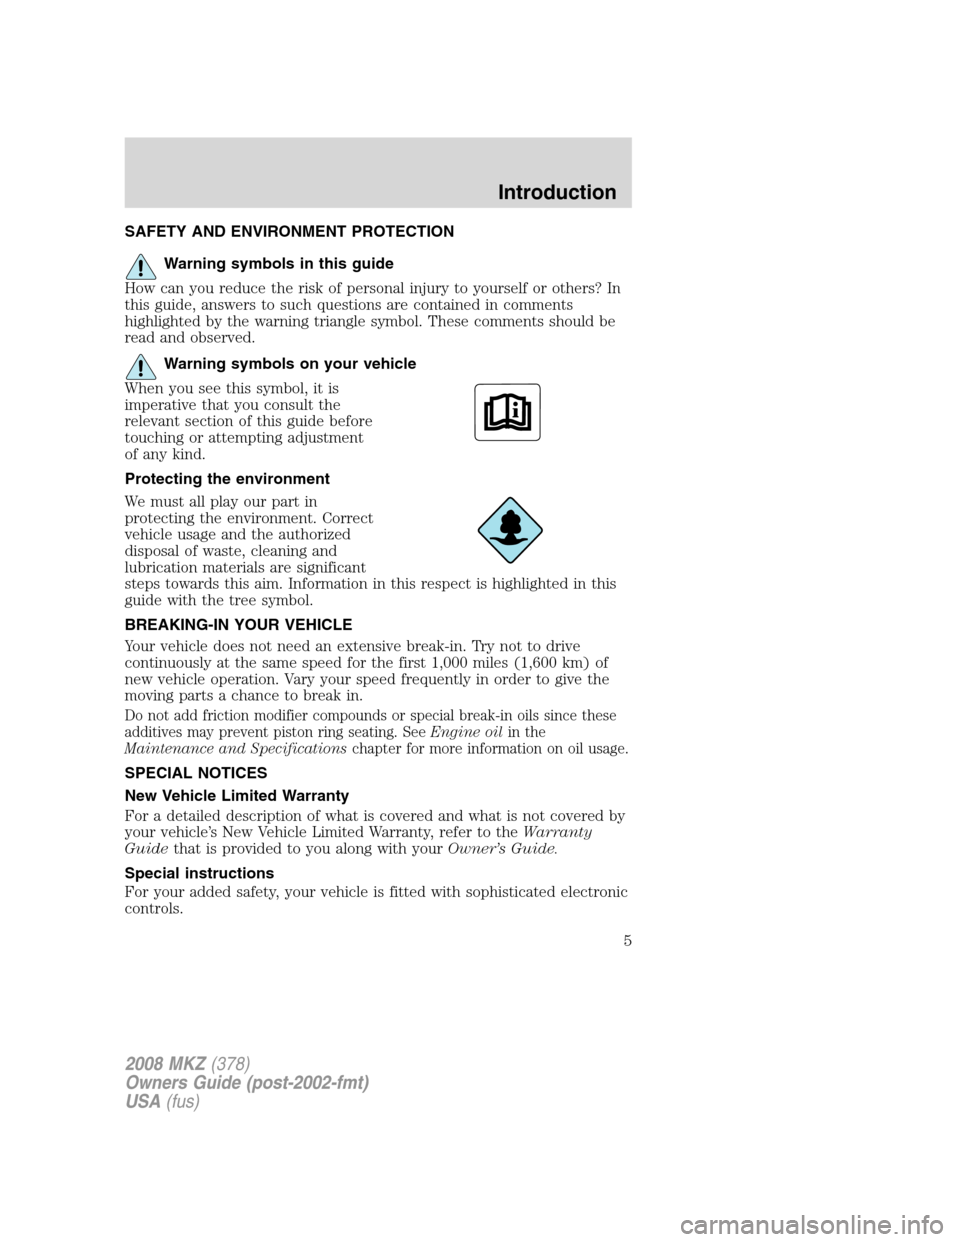 LINCOLN MKZ 2008  Owners Manual, Page 5